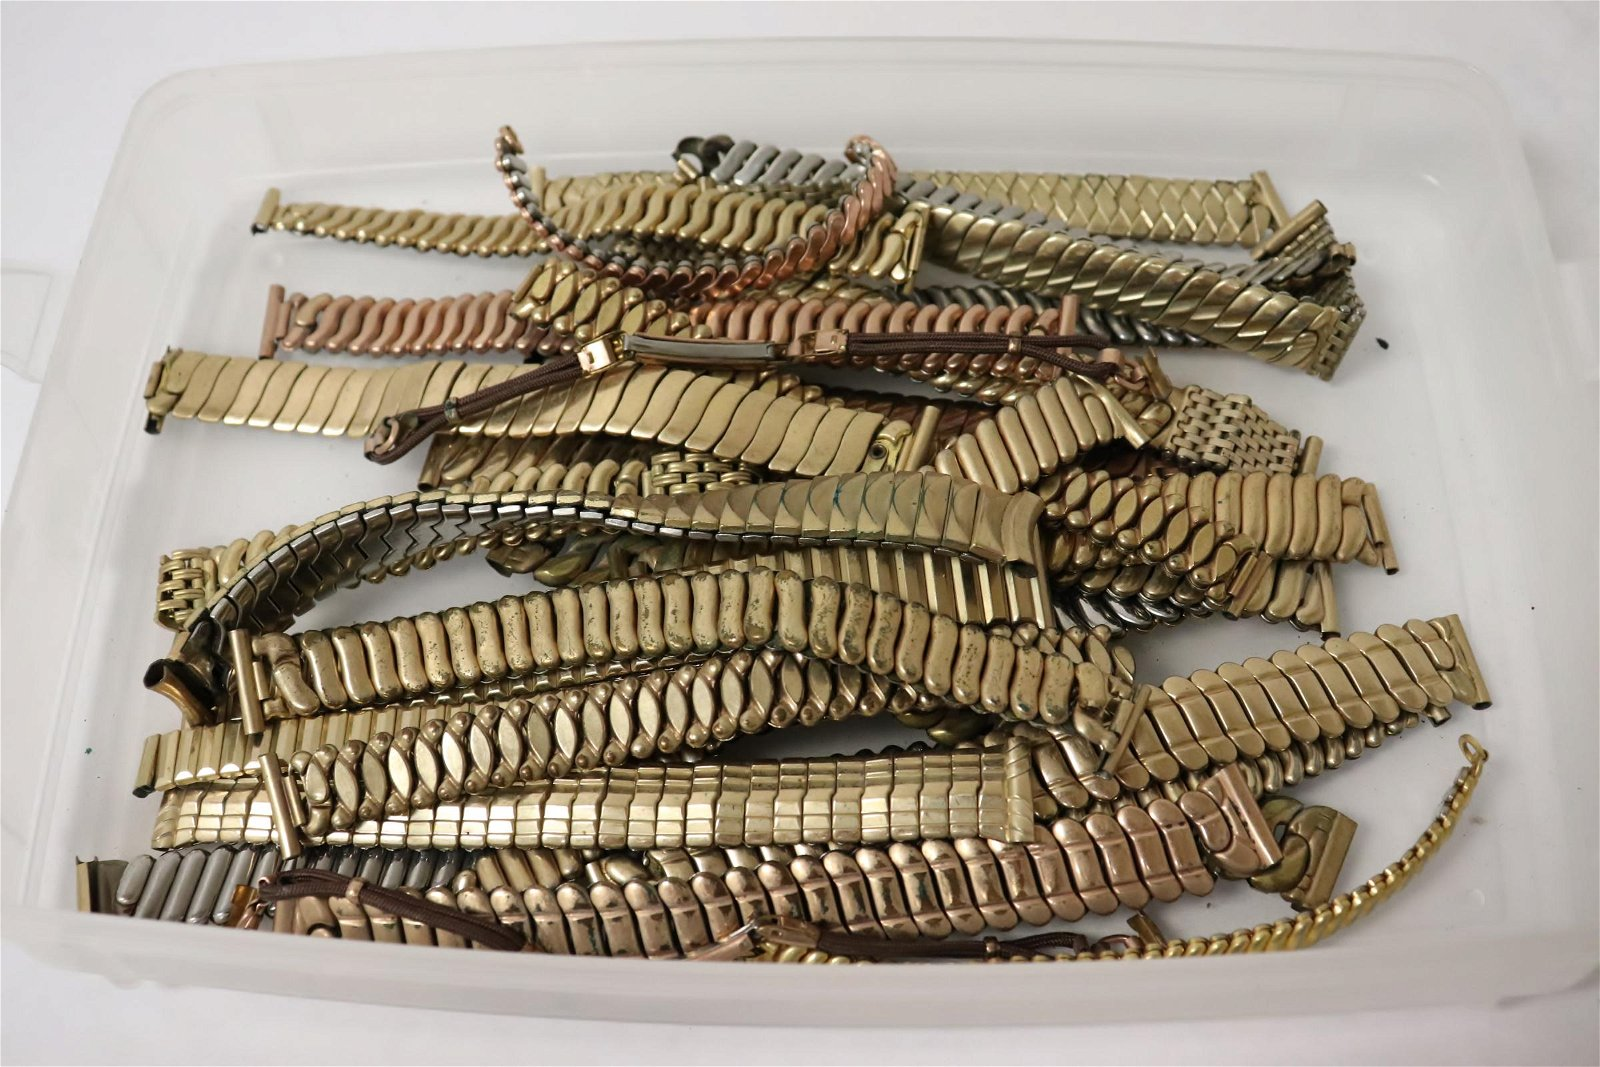 Approx. 30 watch bands